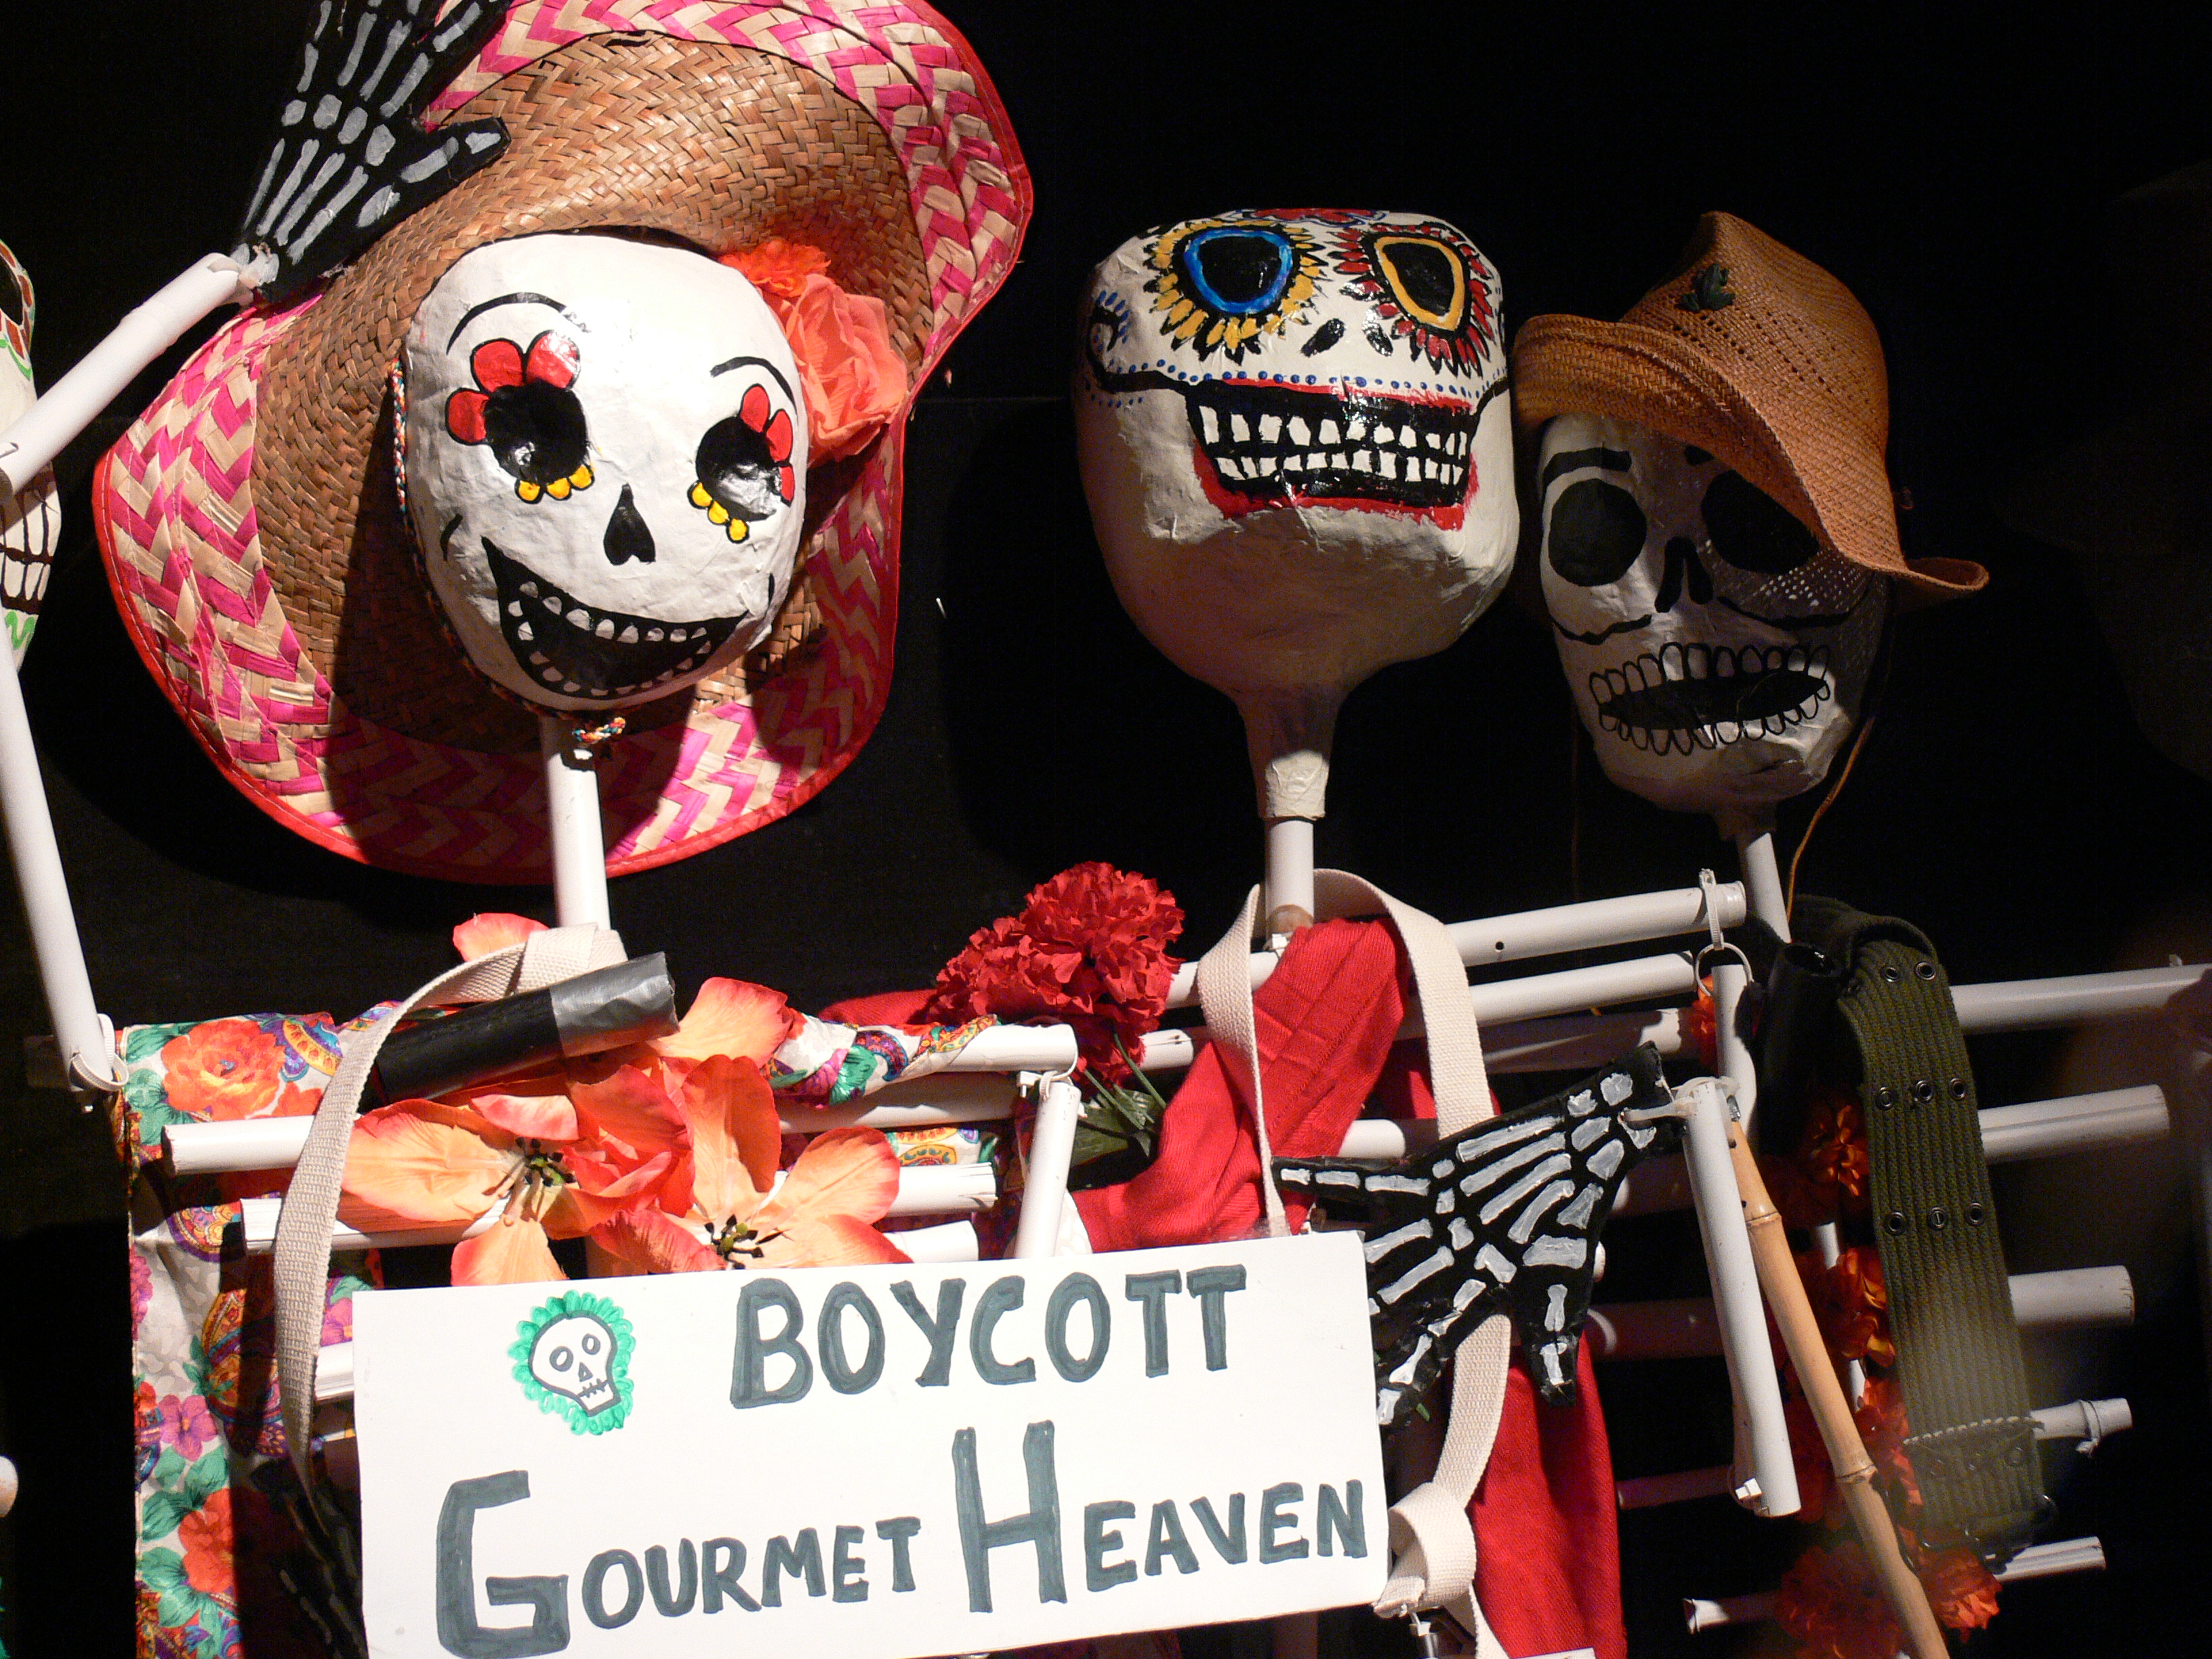 Trick or Treat or Boycott Gourmet Heaven